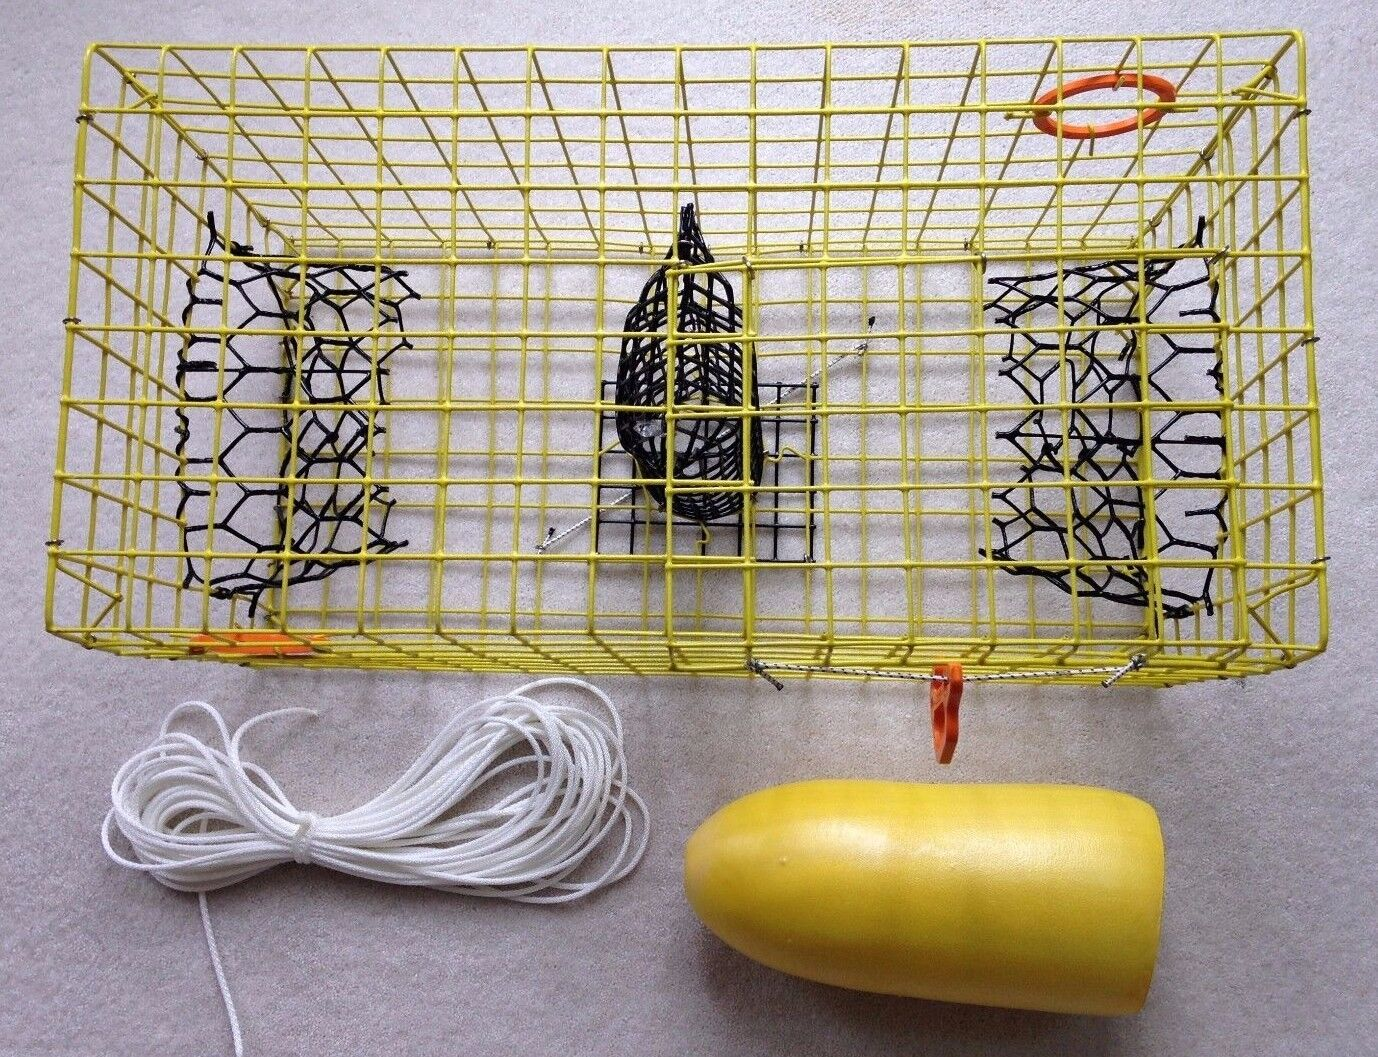 PVC Yellow Commercial Grade Crab Pot   Trap With 50 Foot Line & Yellow 5x11 Buoy